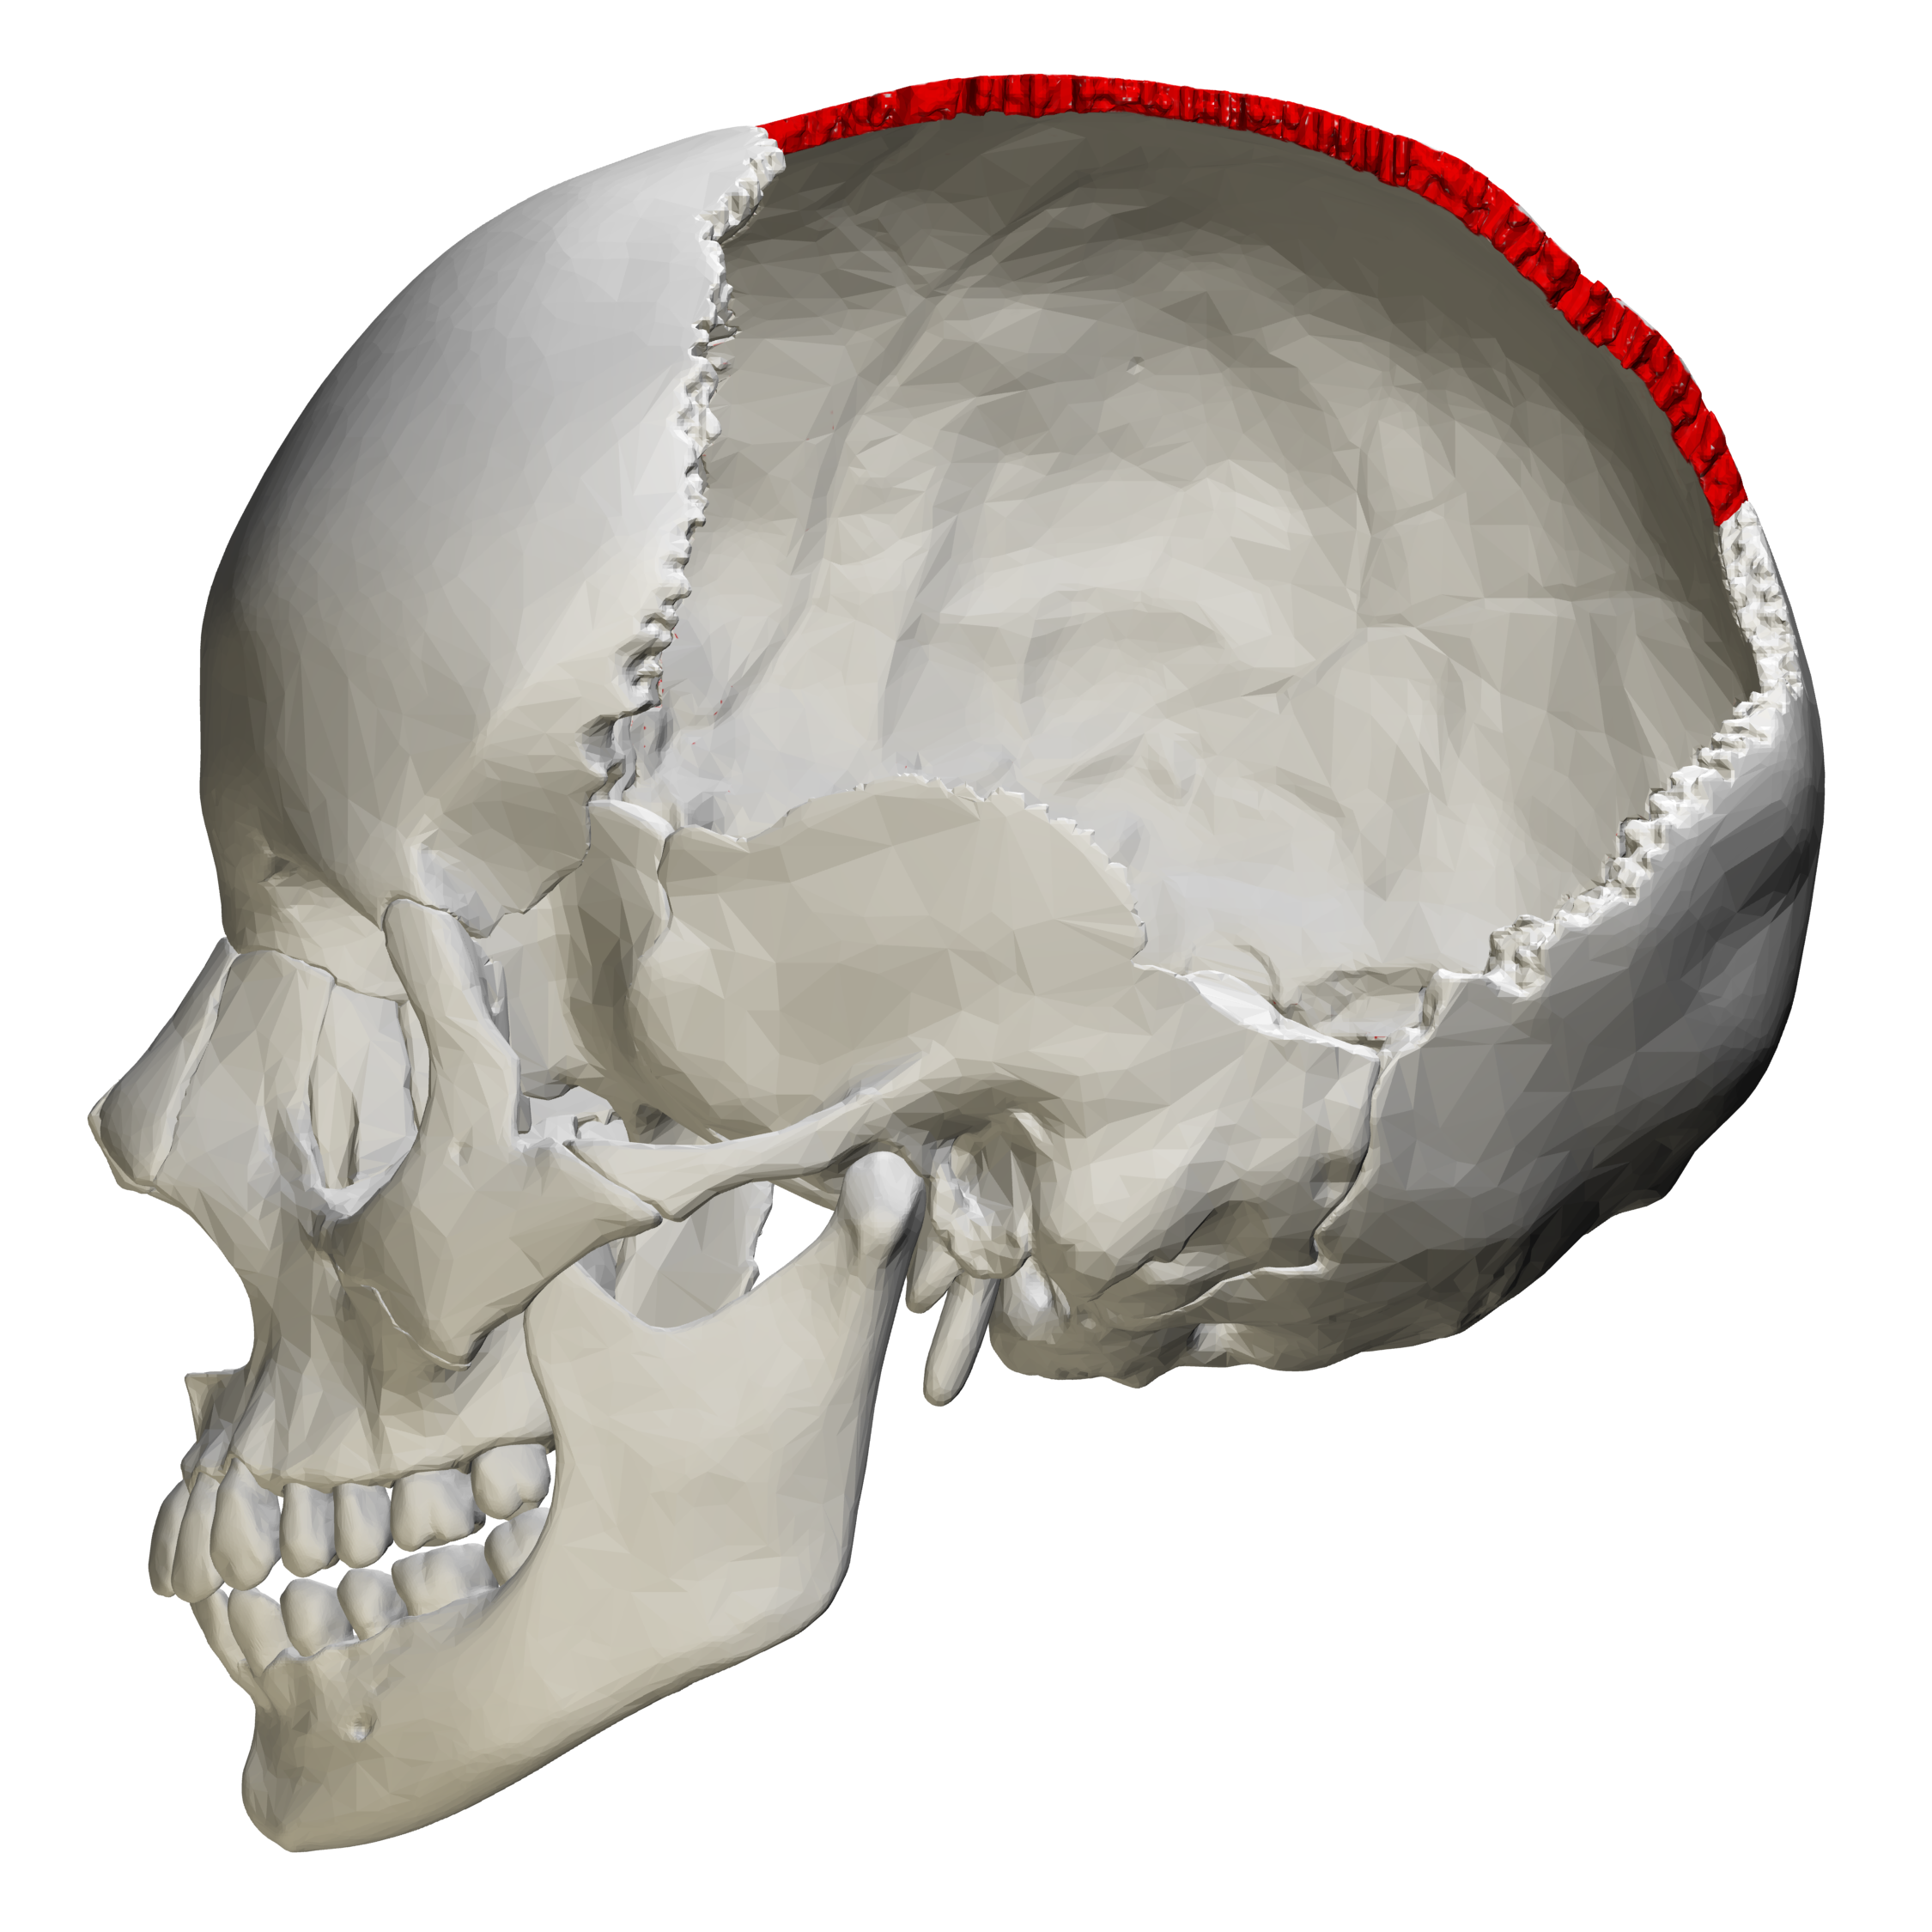 File:Sagittal suture - skull - lateral view01.png ...